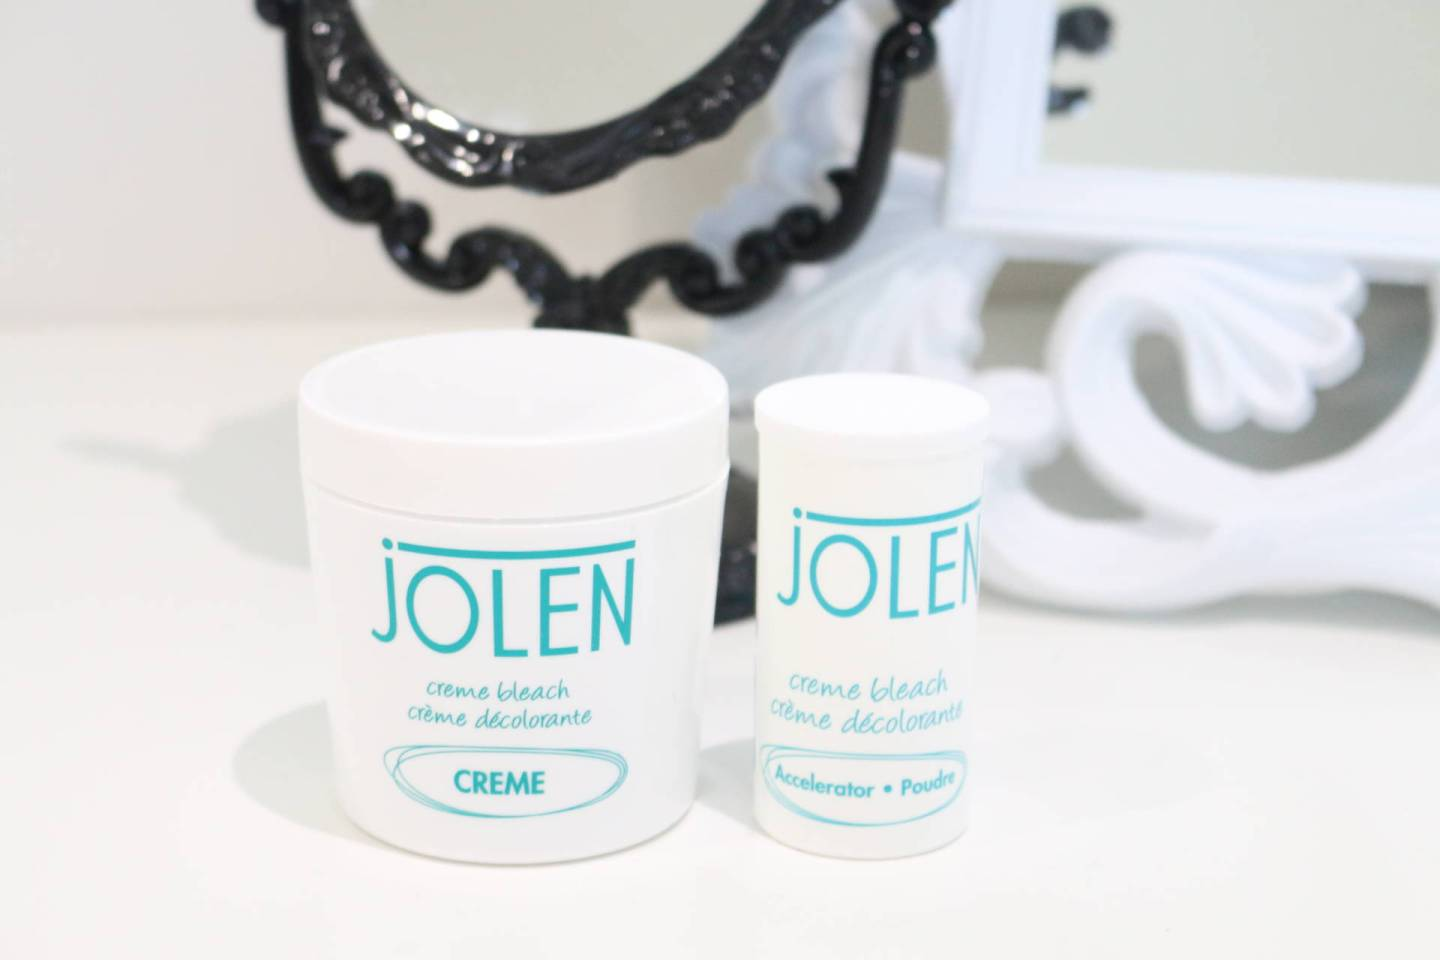 jolen cream bleach instructions